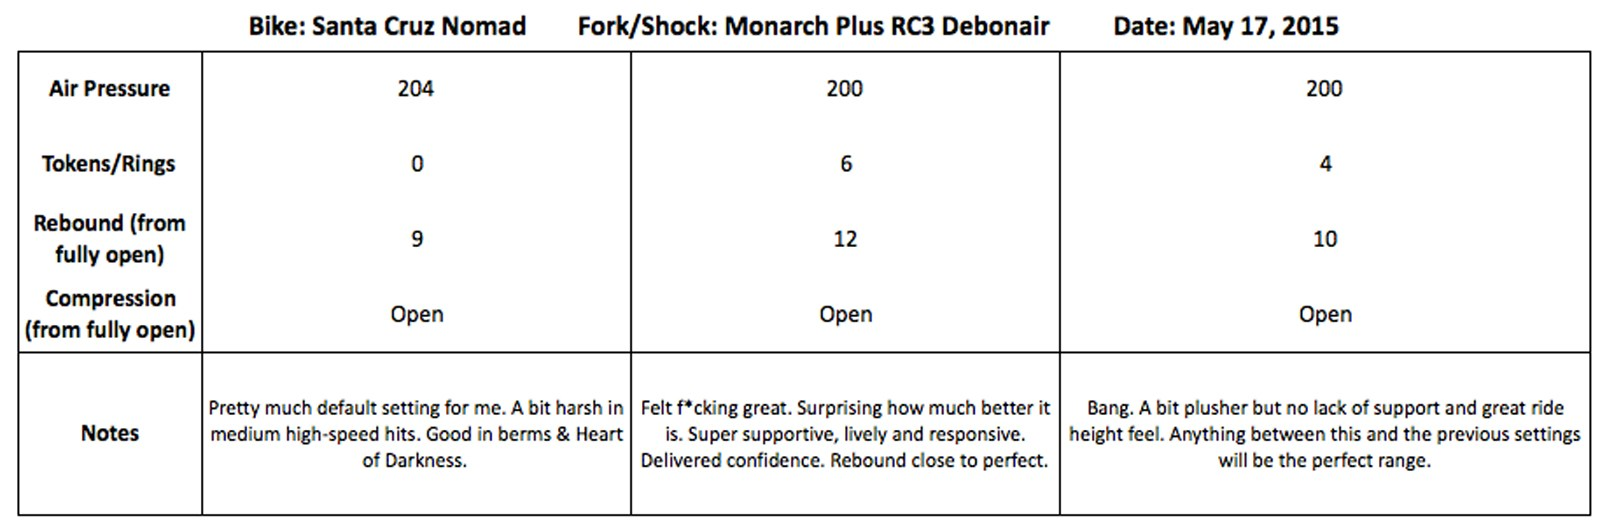 Pete_Roggeman_Rock_Shox_Monarch_Plus_Debonair_settings